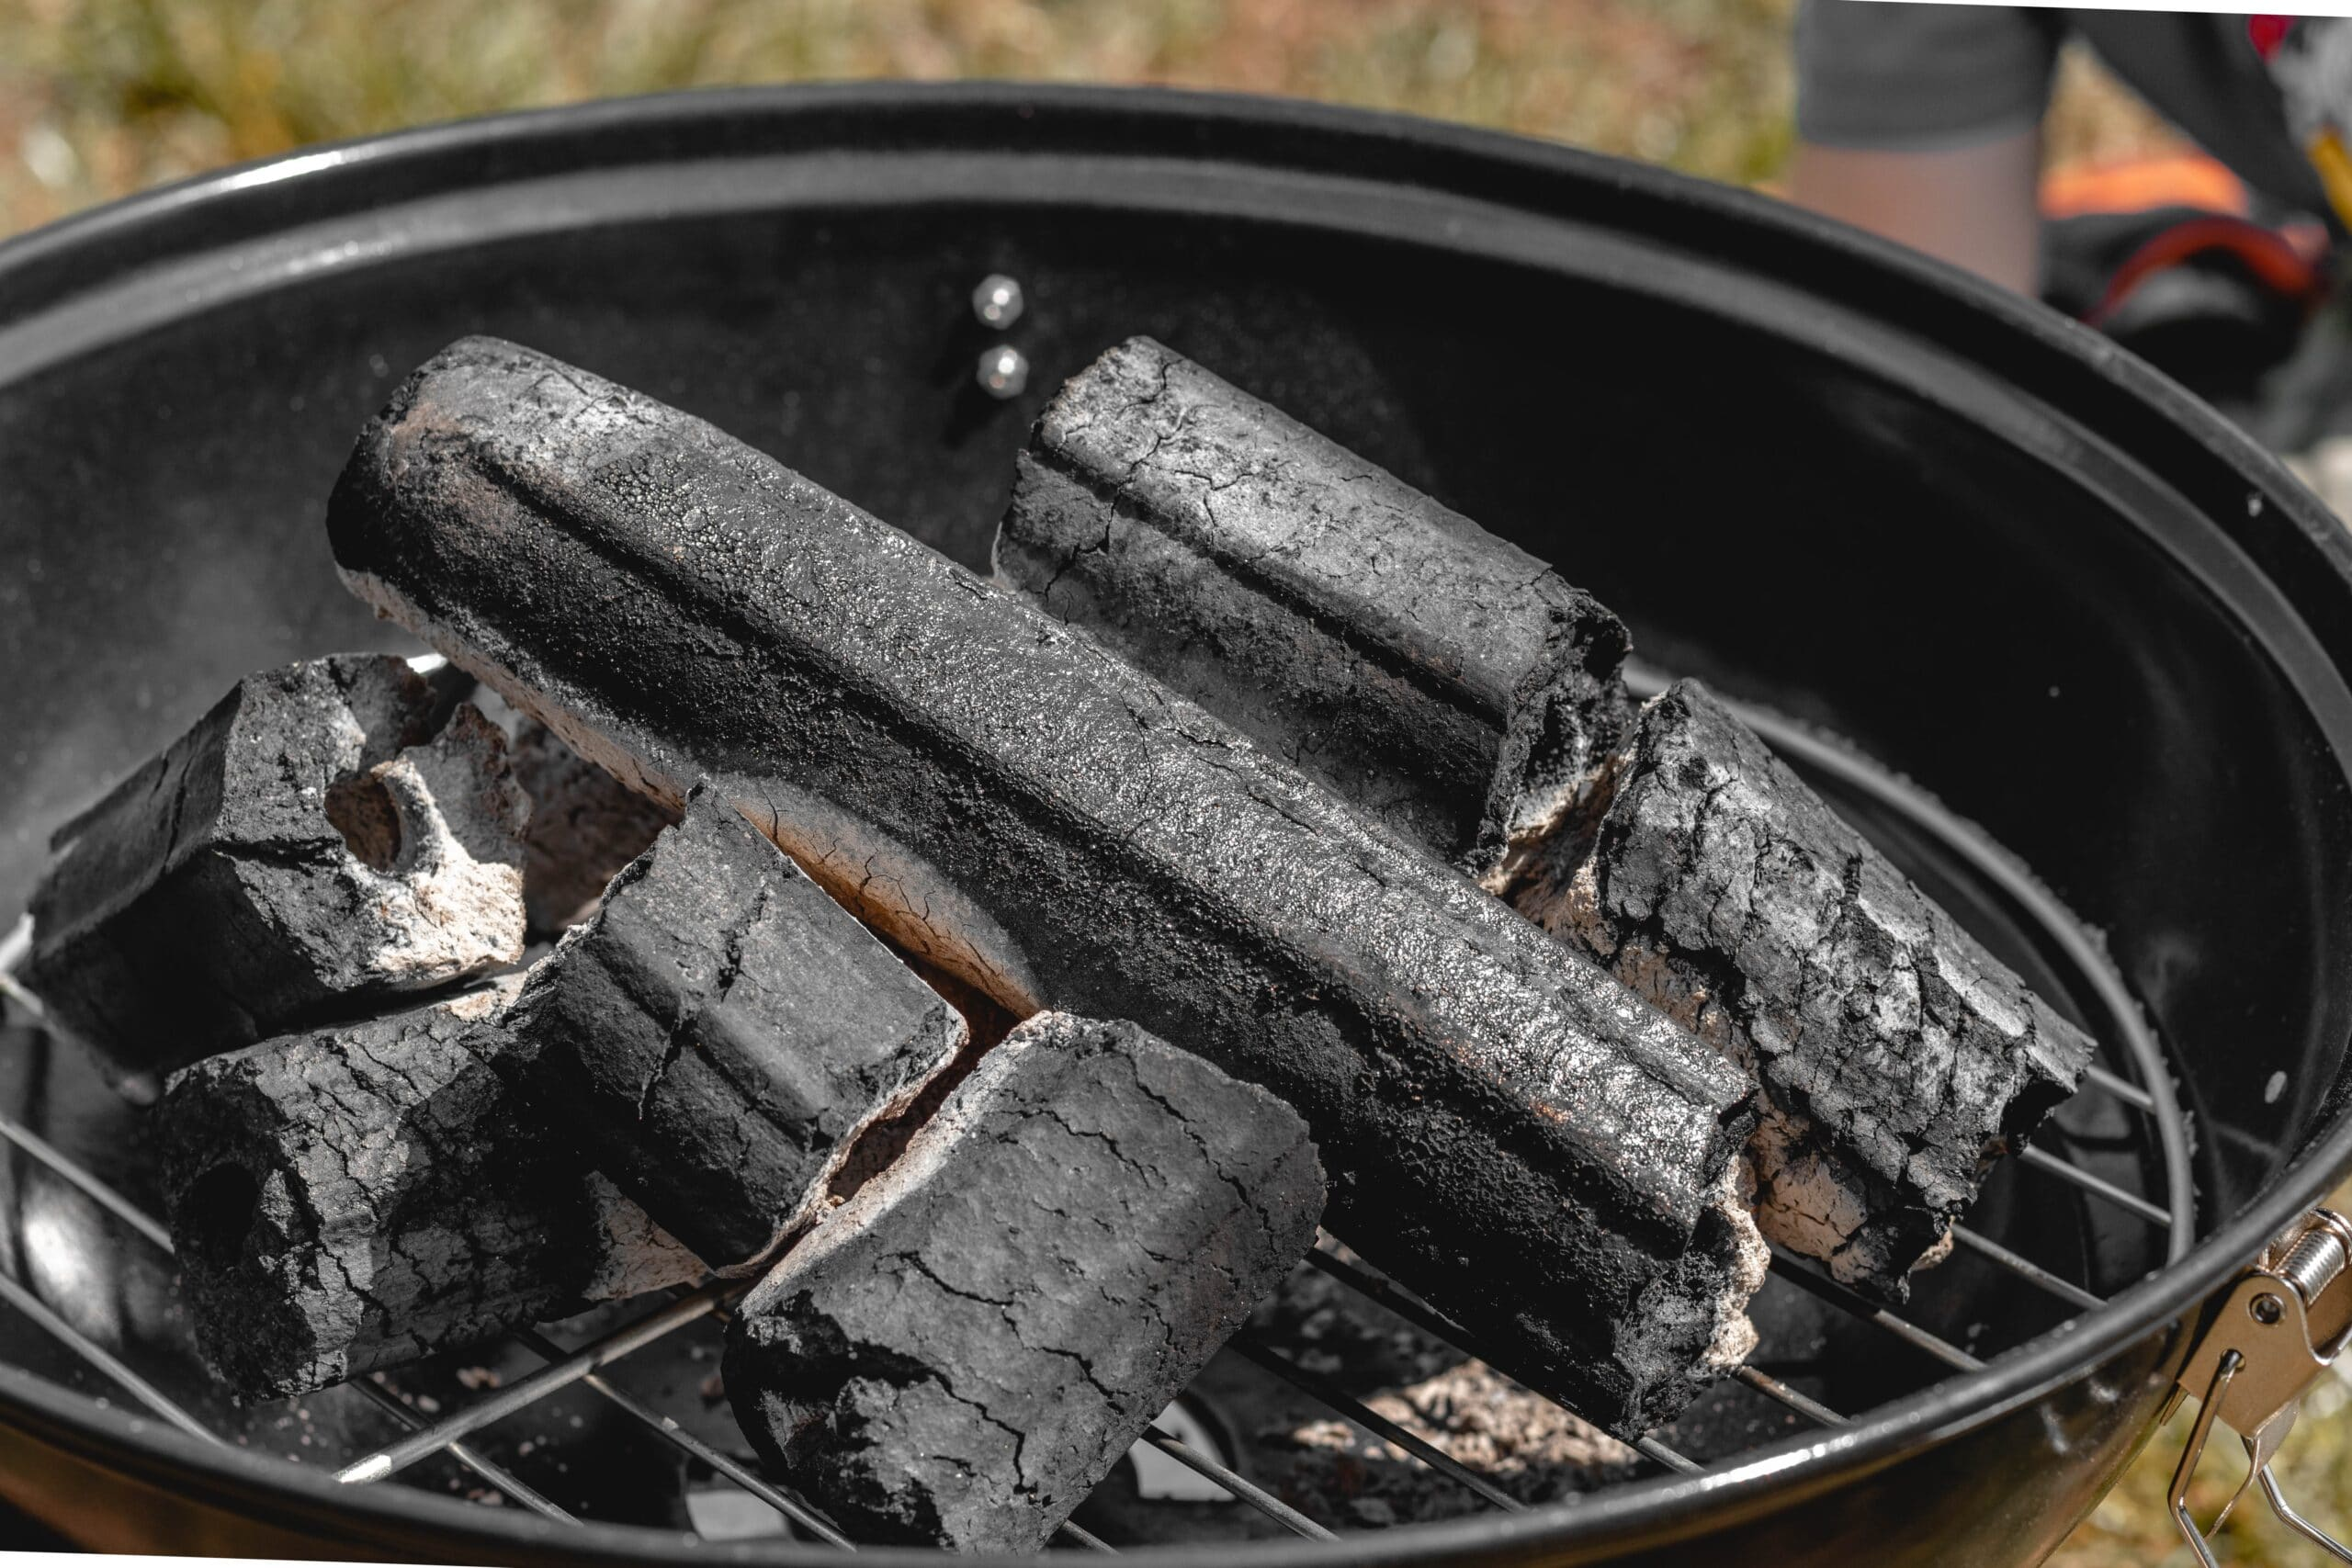 kettle grill with burning charcoal